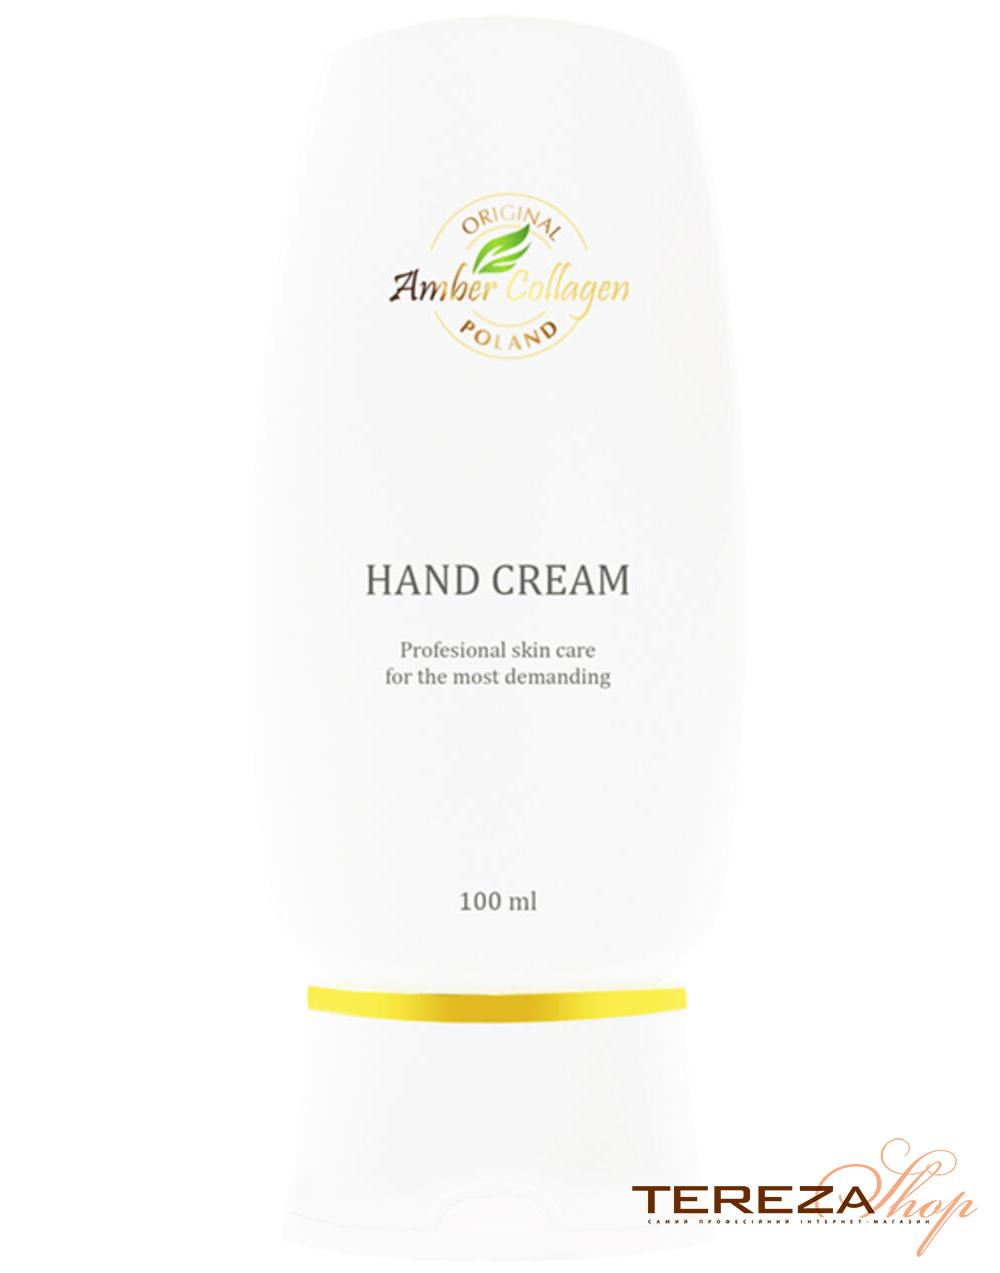 HAND CREAM AMBER COLLAGEN | Tereza Shop